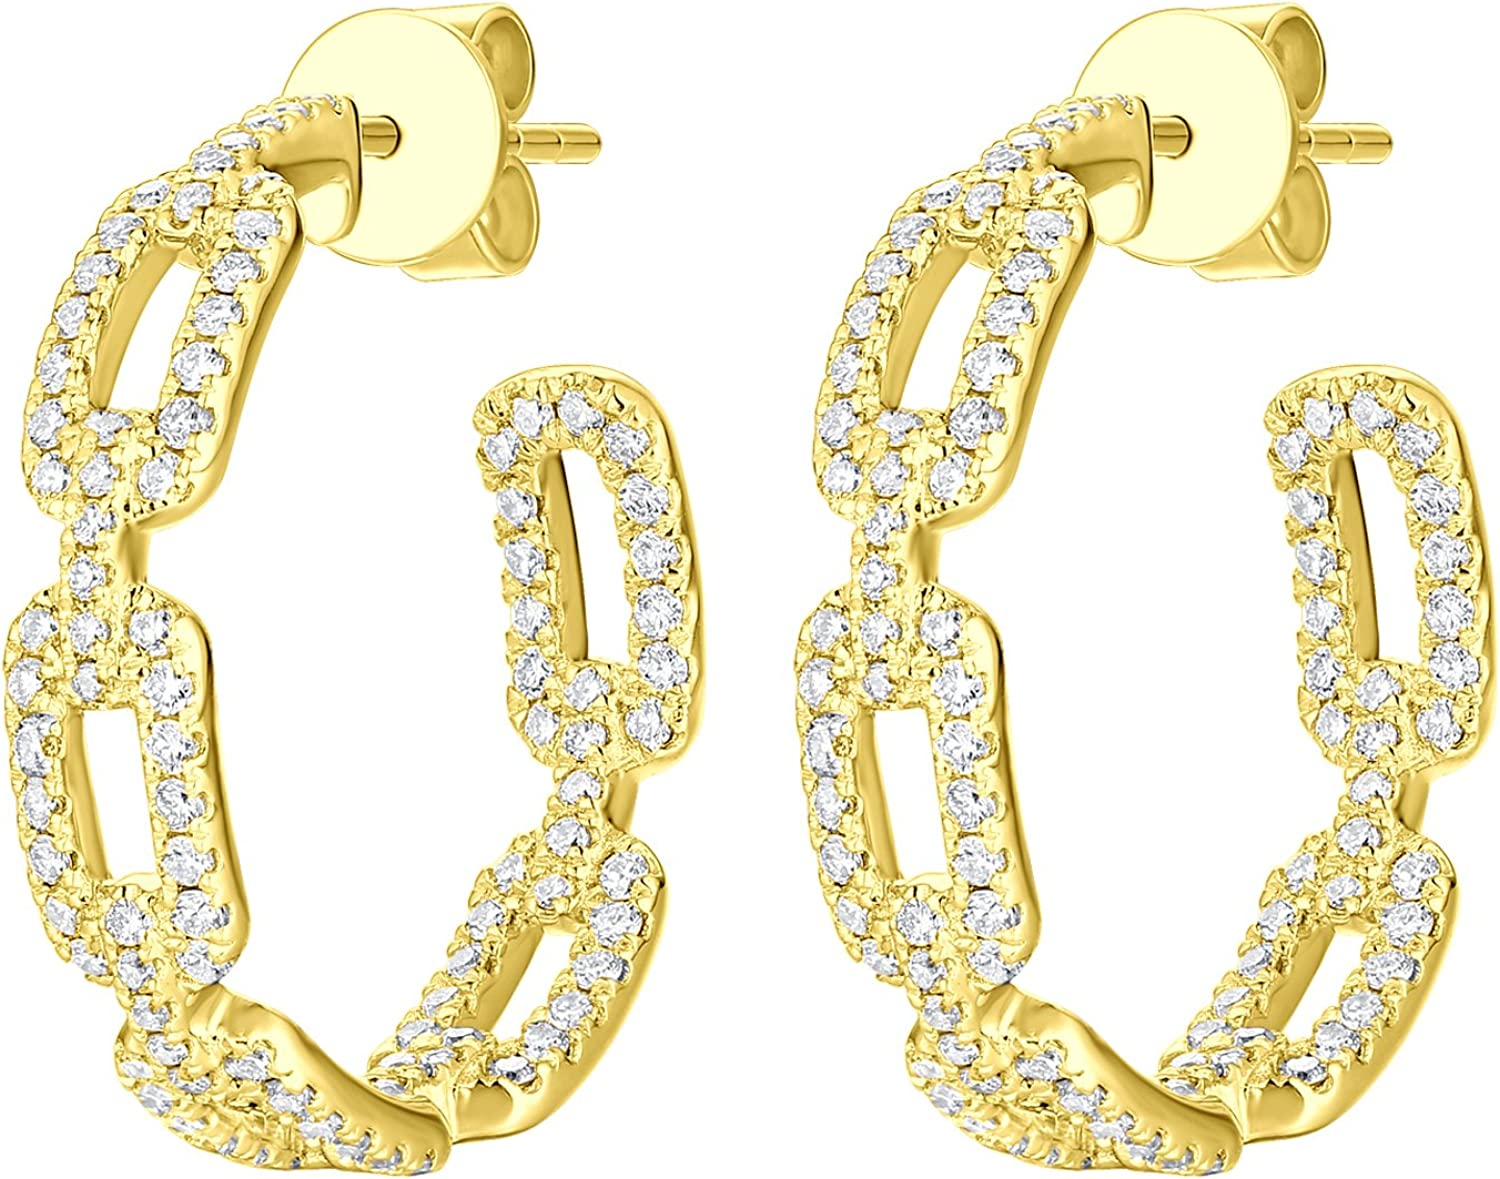 14k Gold Prism Jewel 1.12Ct Natural Diamond Designer Inside Out Diamond Hoop Earring